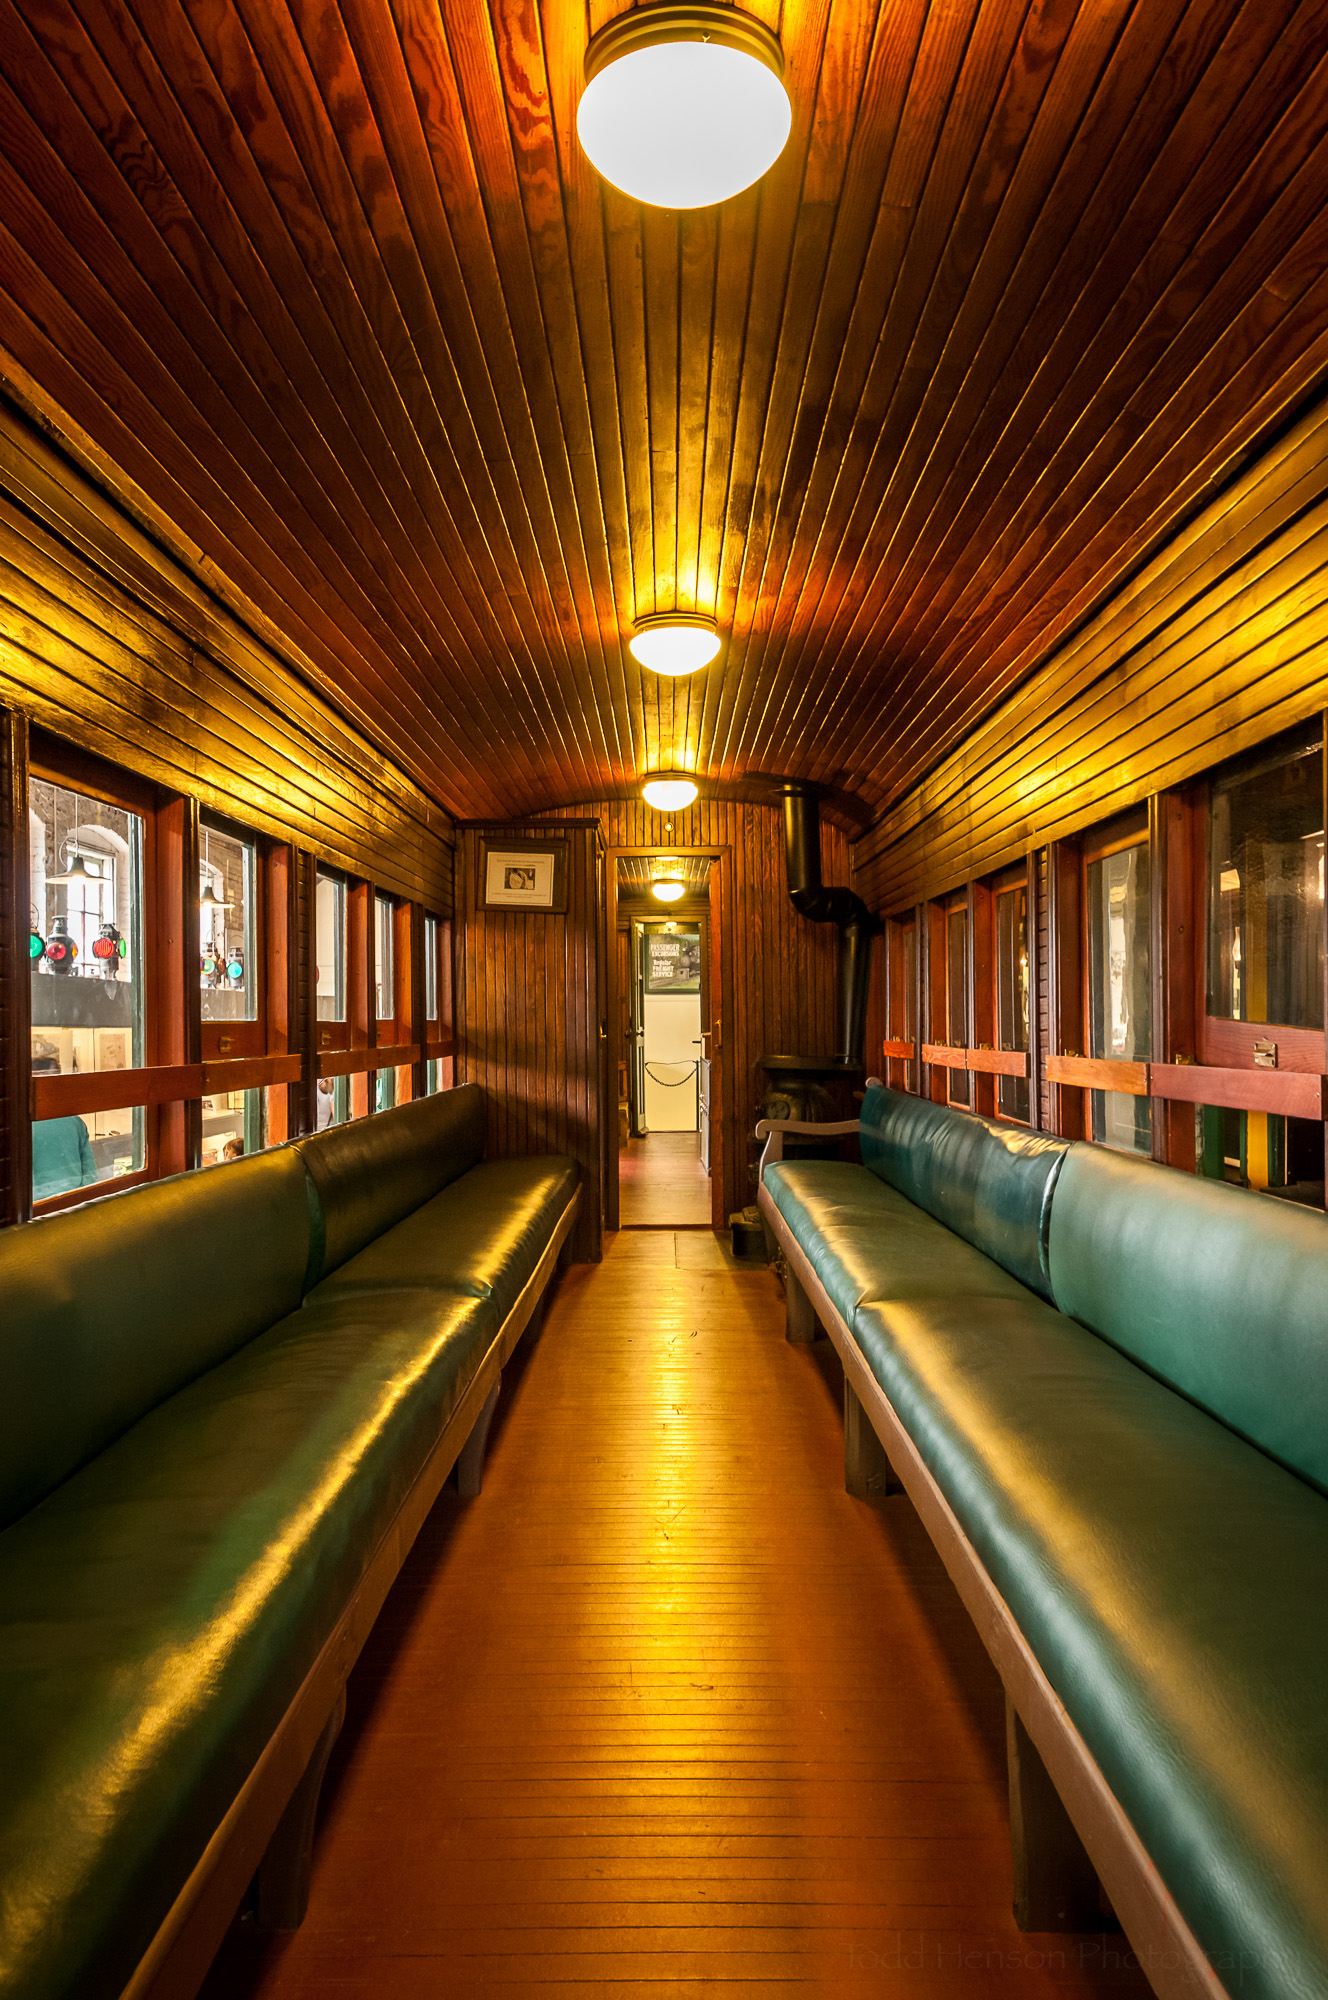 Another interior of passenger train with stove (3 image HDR)